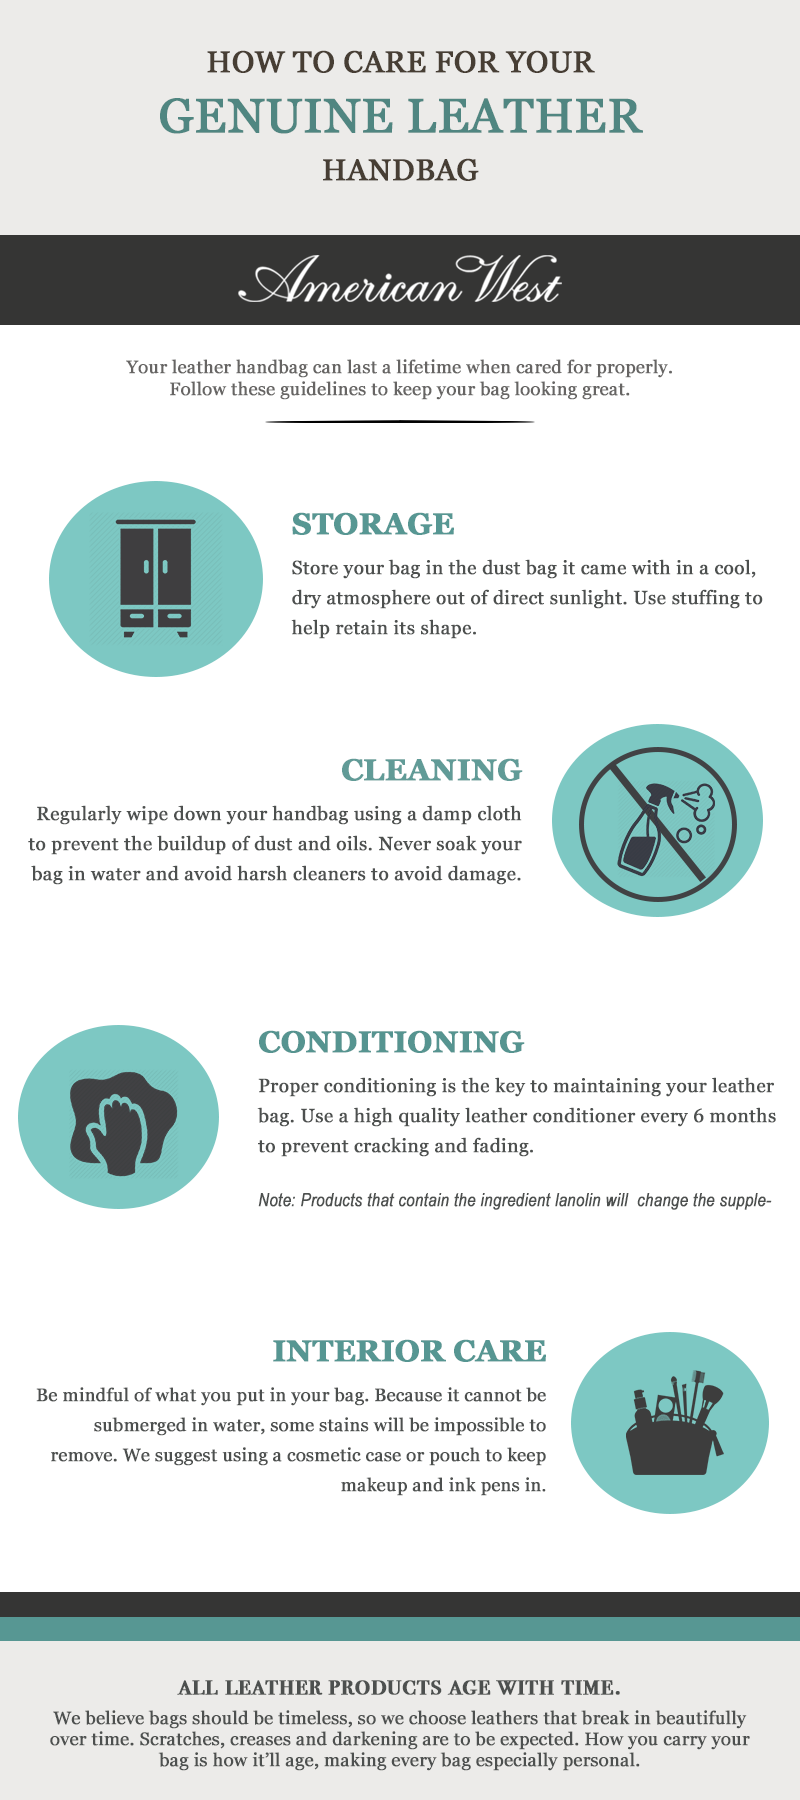 Leather handbag care instructions